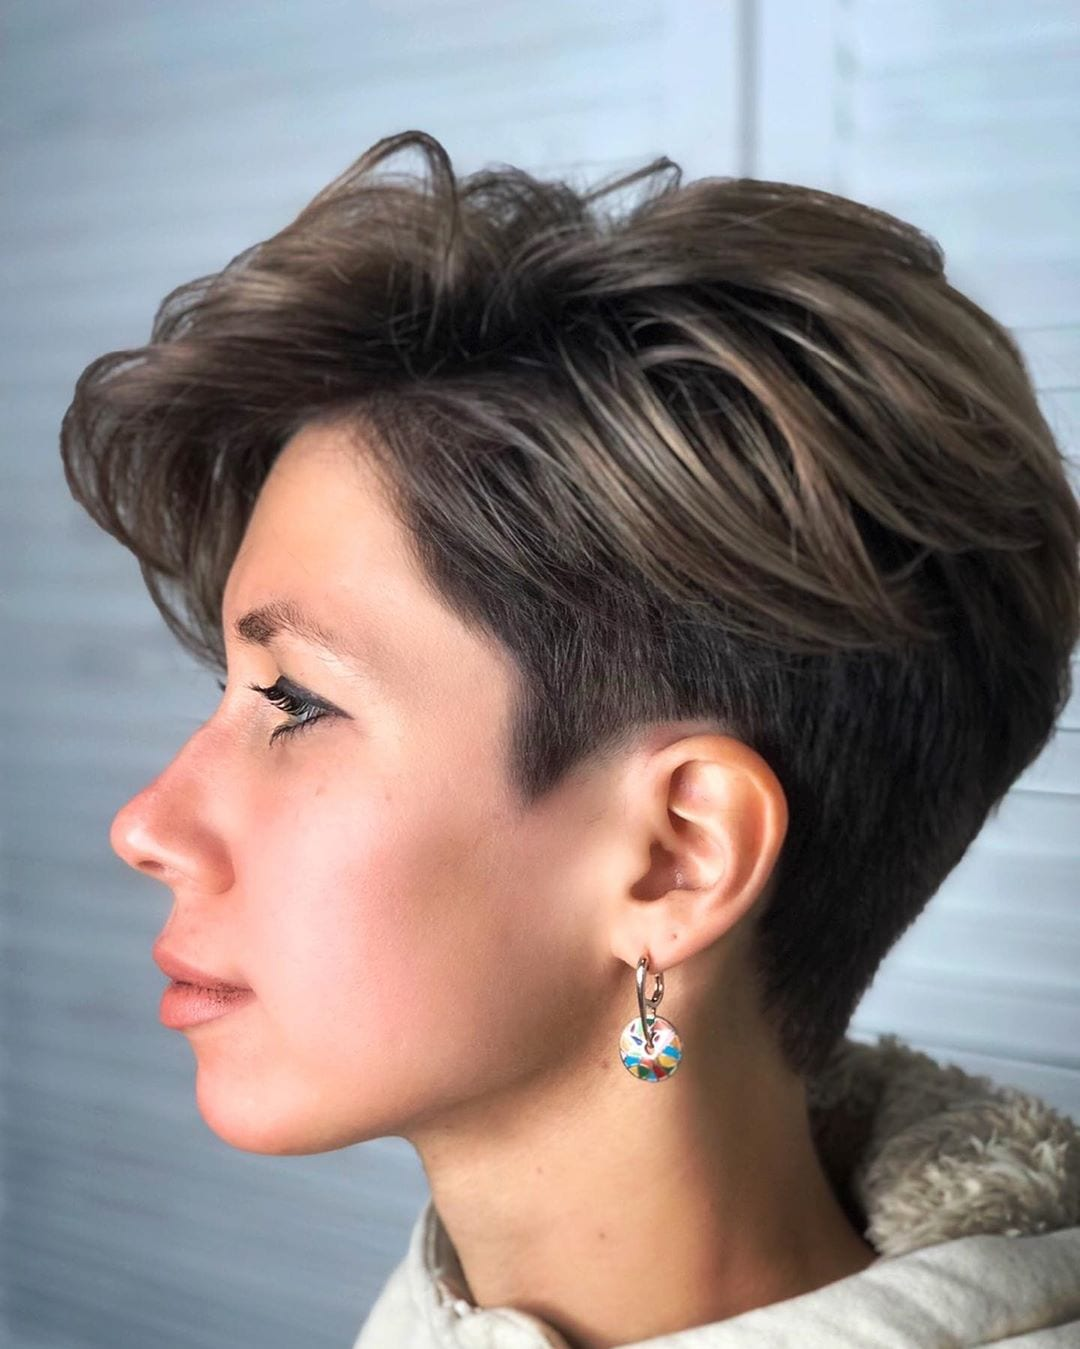 Hairstyles with short square ladies faces for Women Square